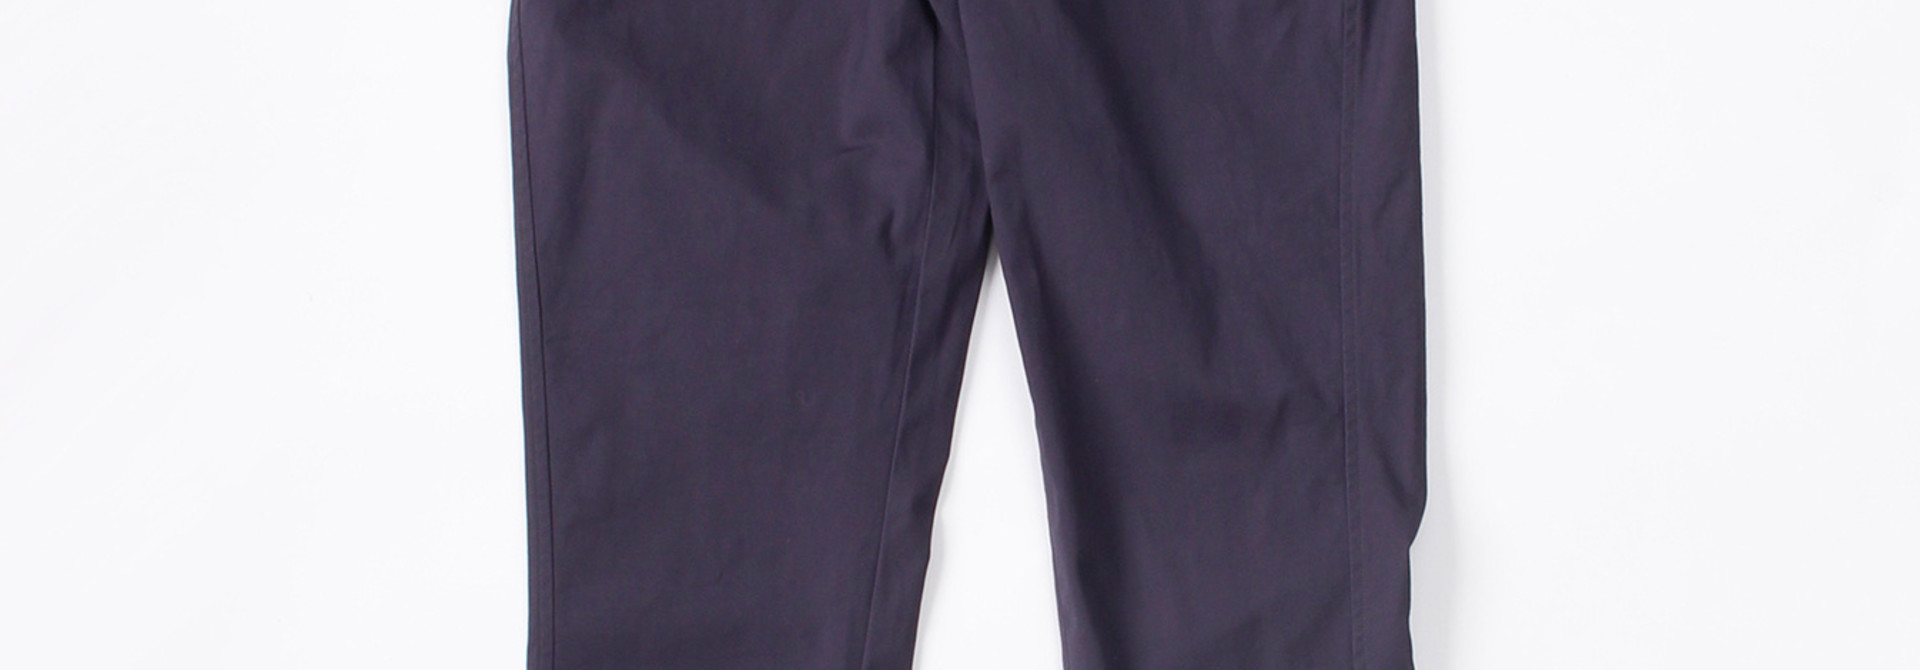 WH Weather Cloth Stretch Pants